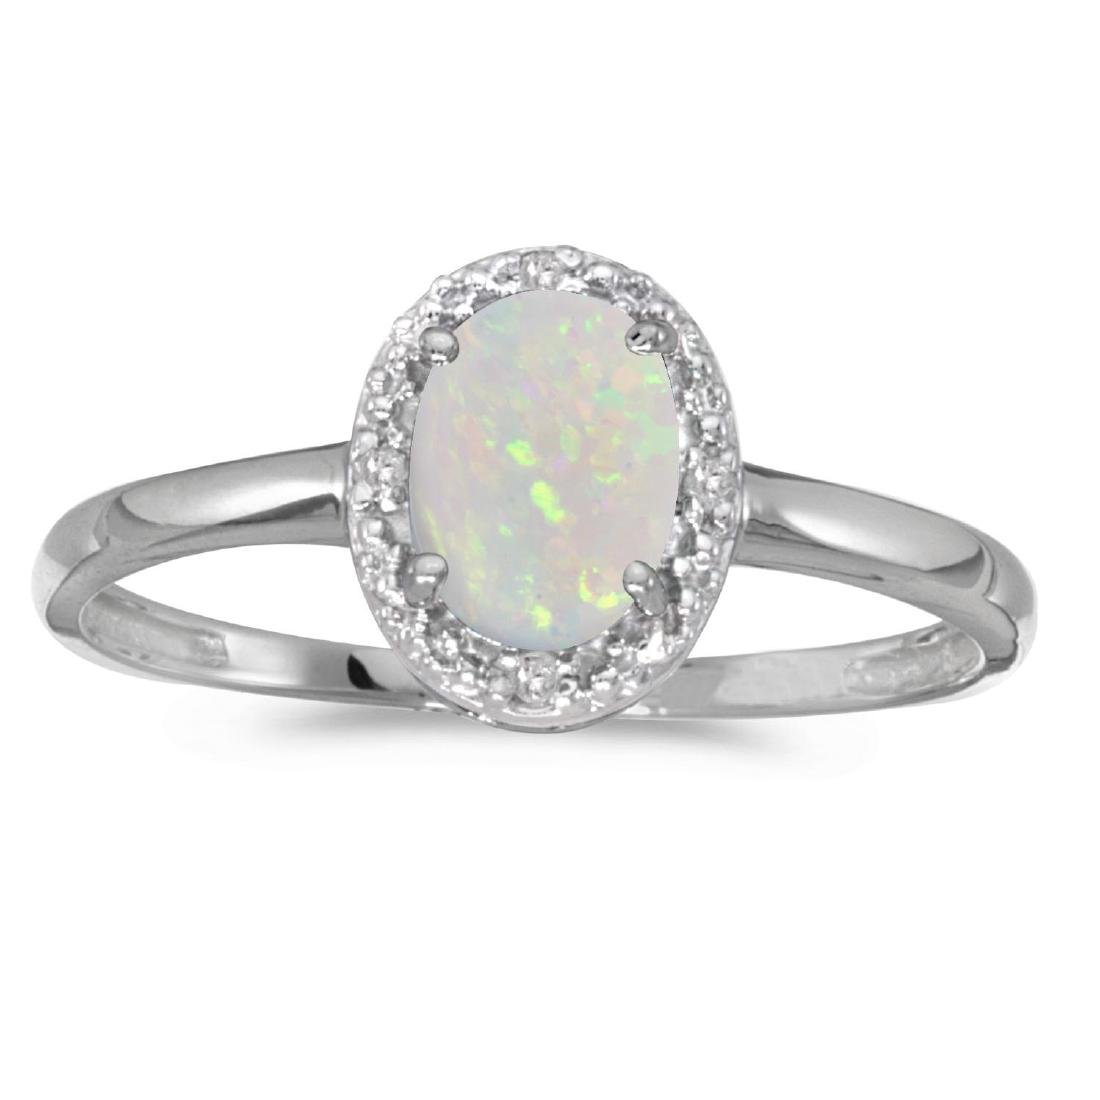 Certified 14k White Gold Oval Opal And Diamond Ring 0.2